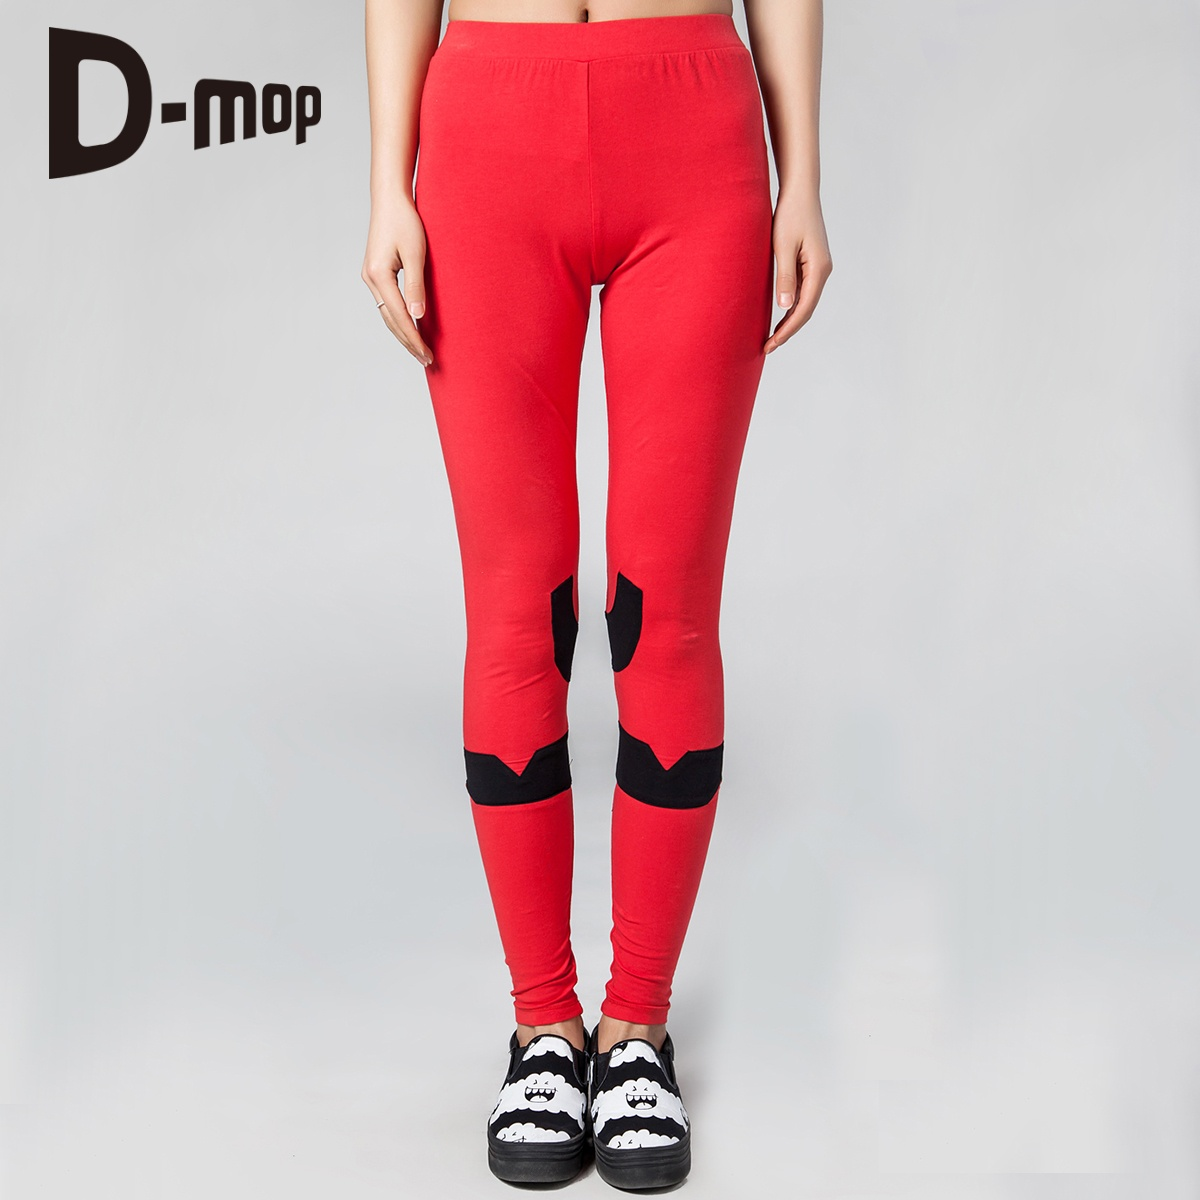 Loveis 2015 spring and summer women solid color leggings pants female feet pants tight knit PT329